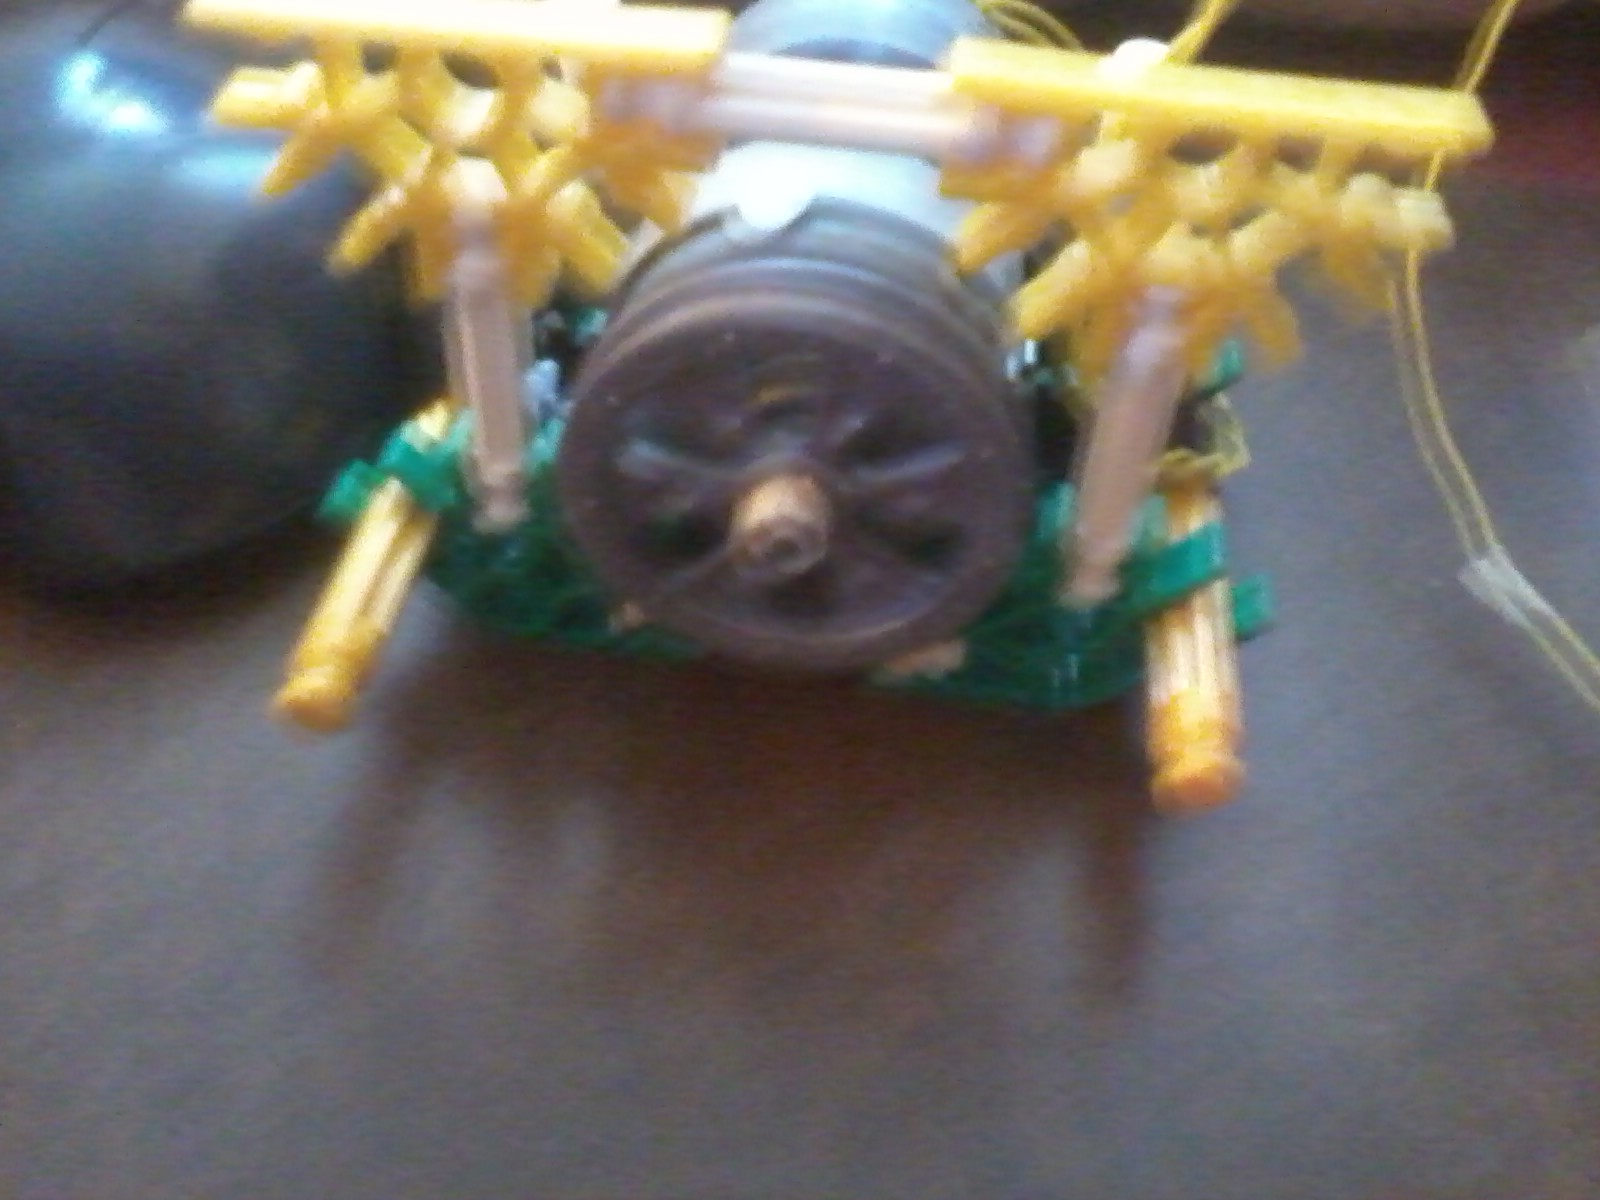 Build your own K'nex motor